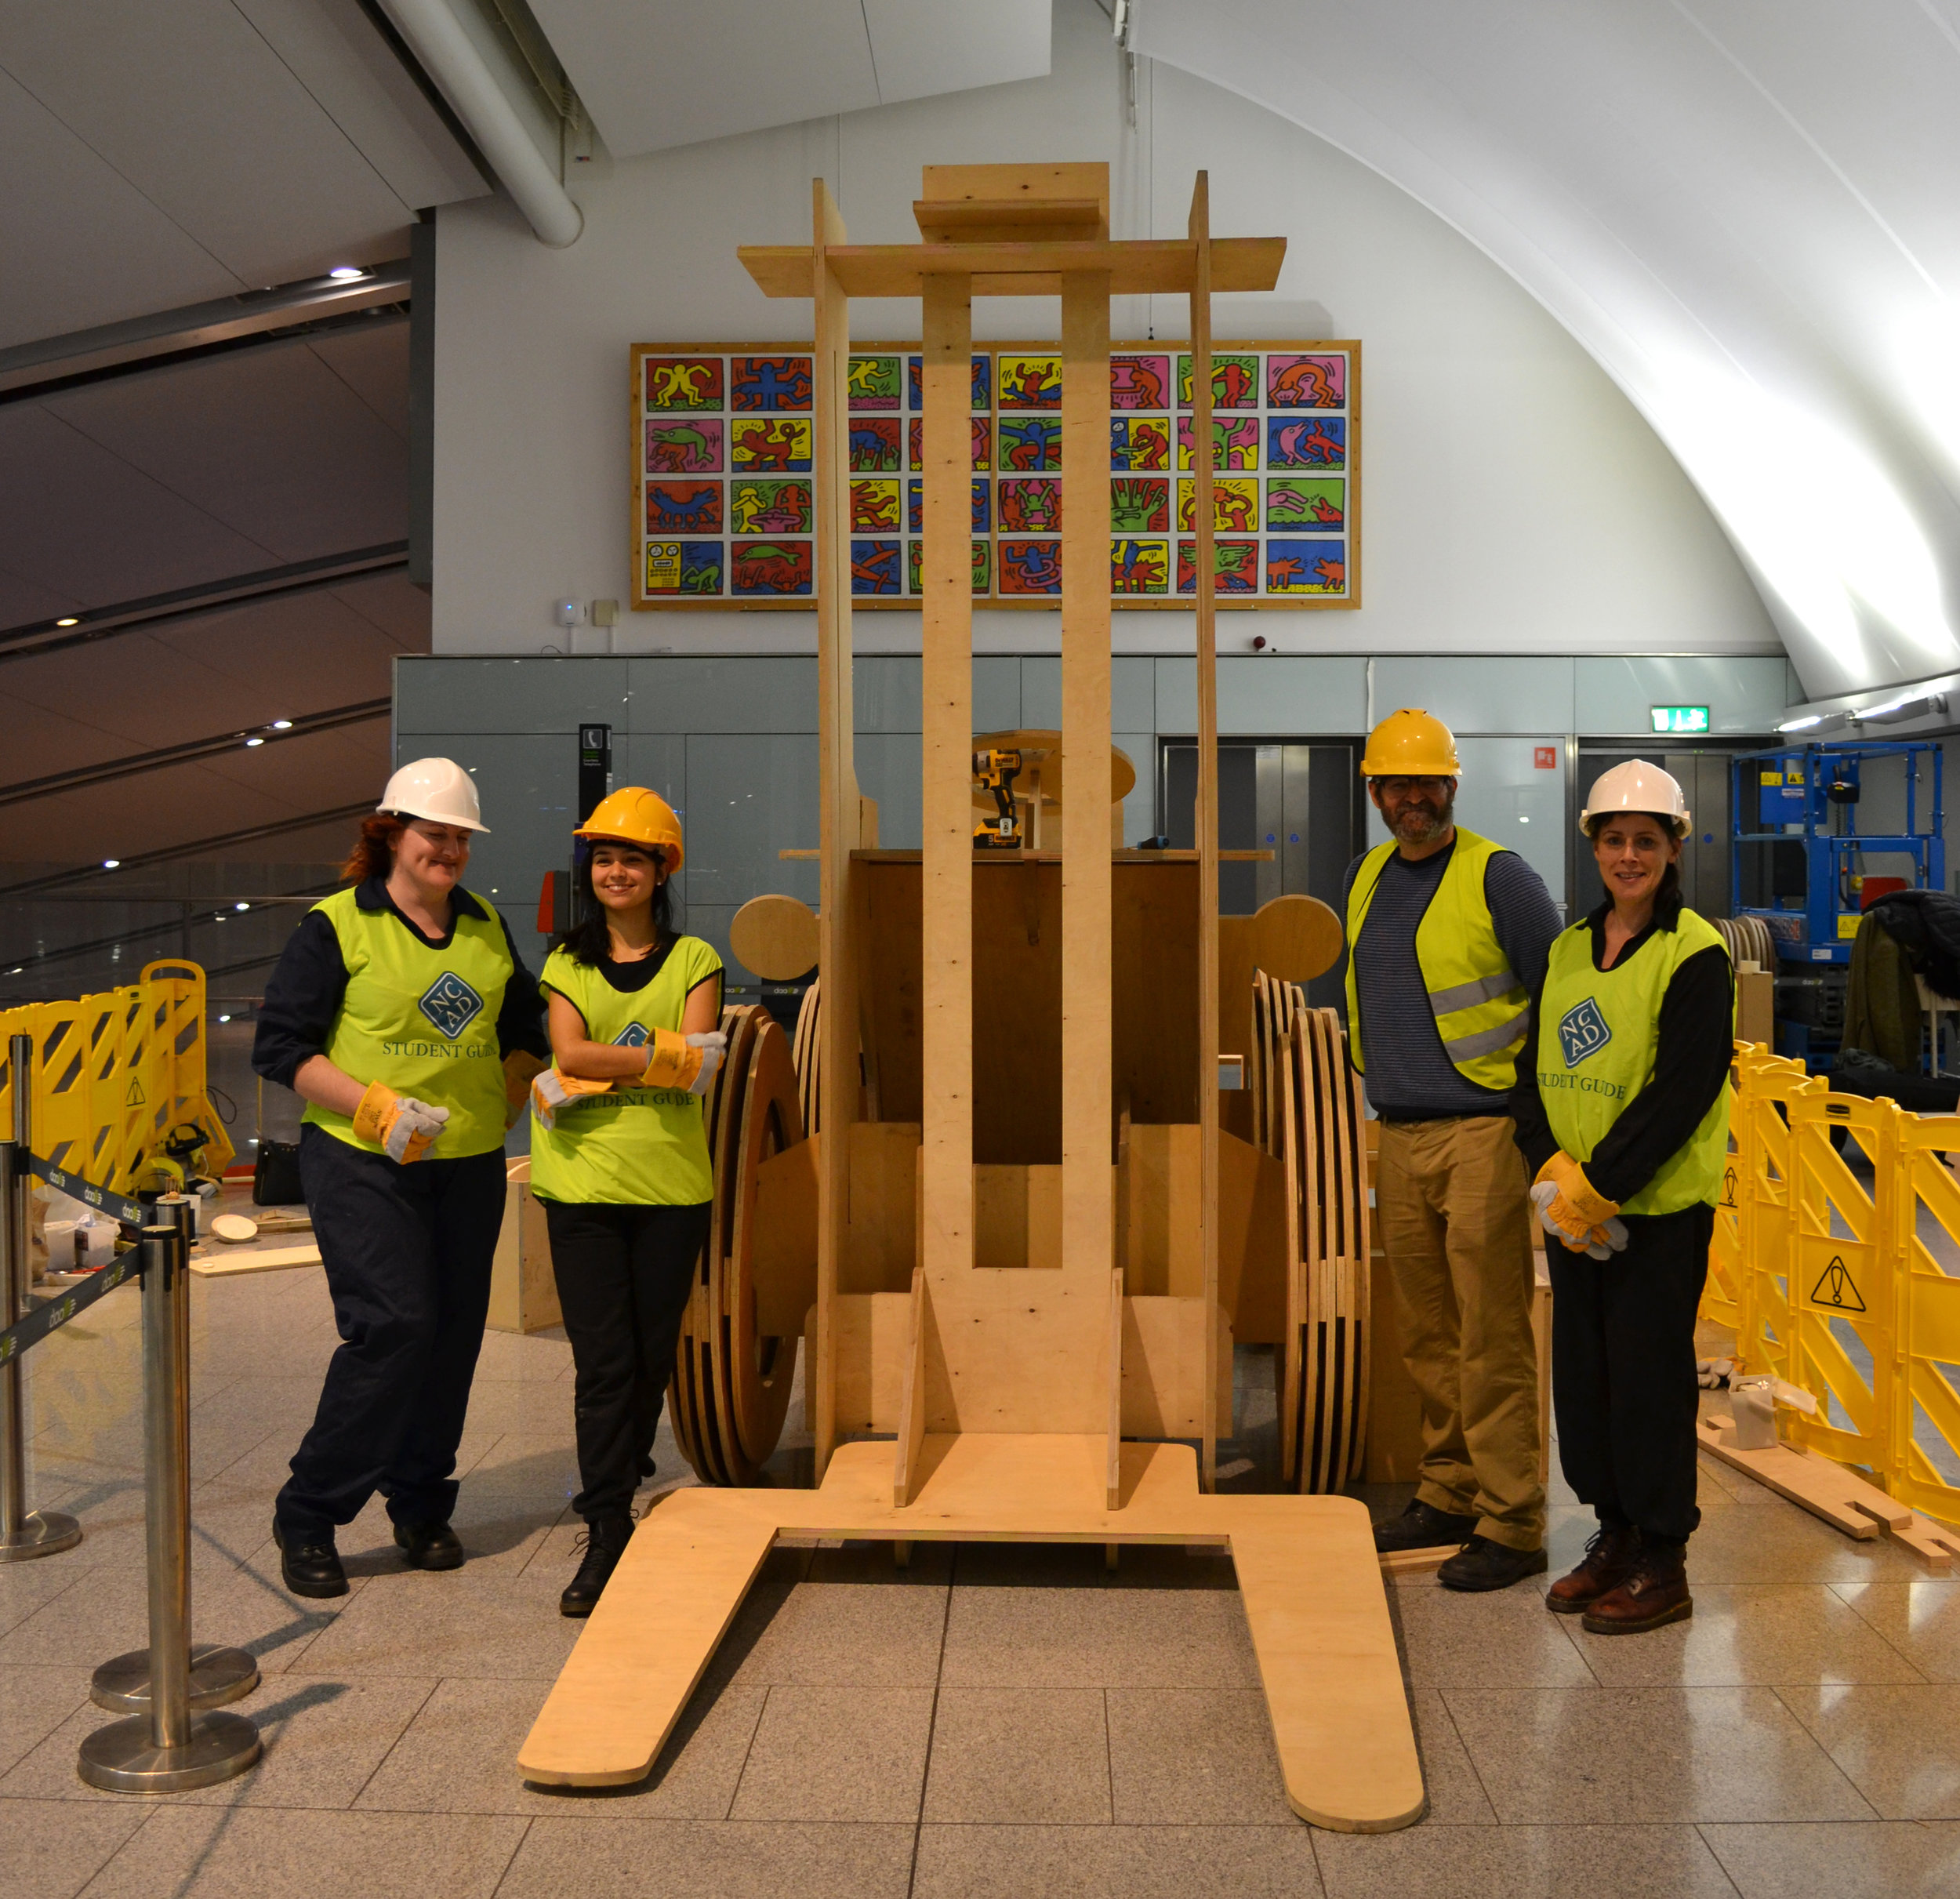 Teamwork - Philip Napier and NCAD Fine Art students construct one of two forklifts at Terminal 2 (airside)